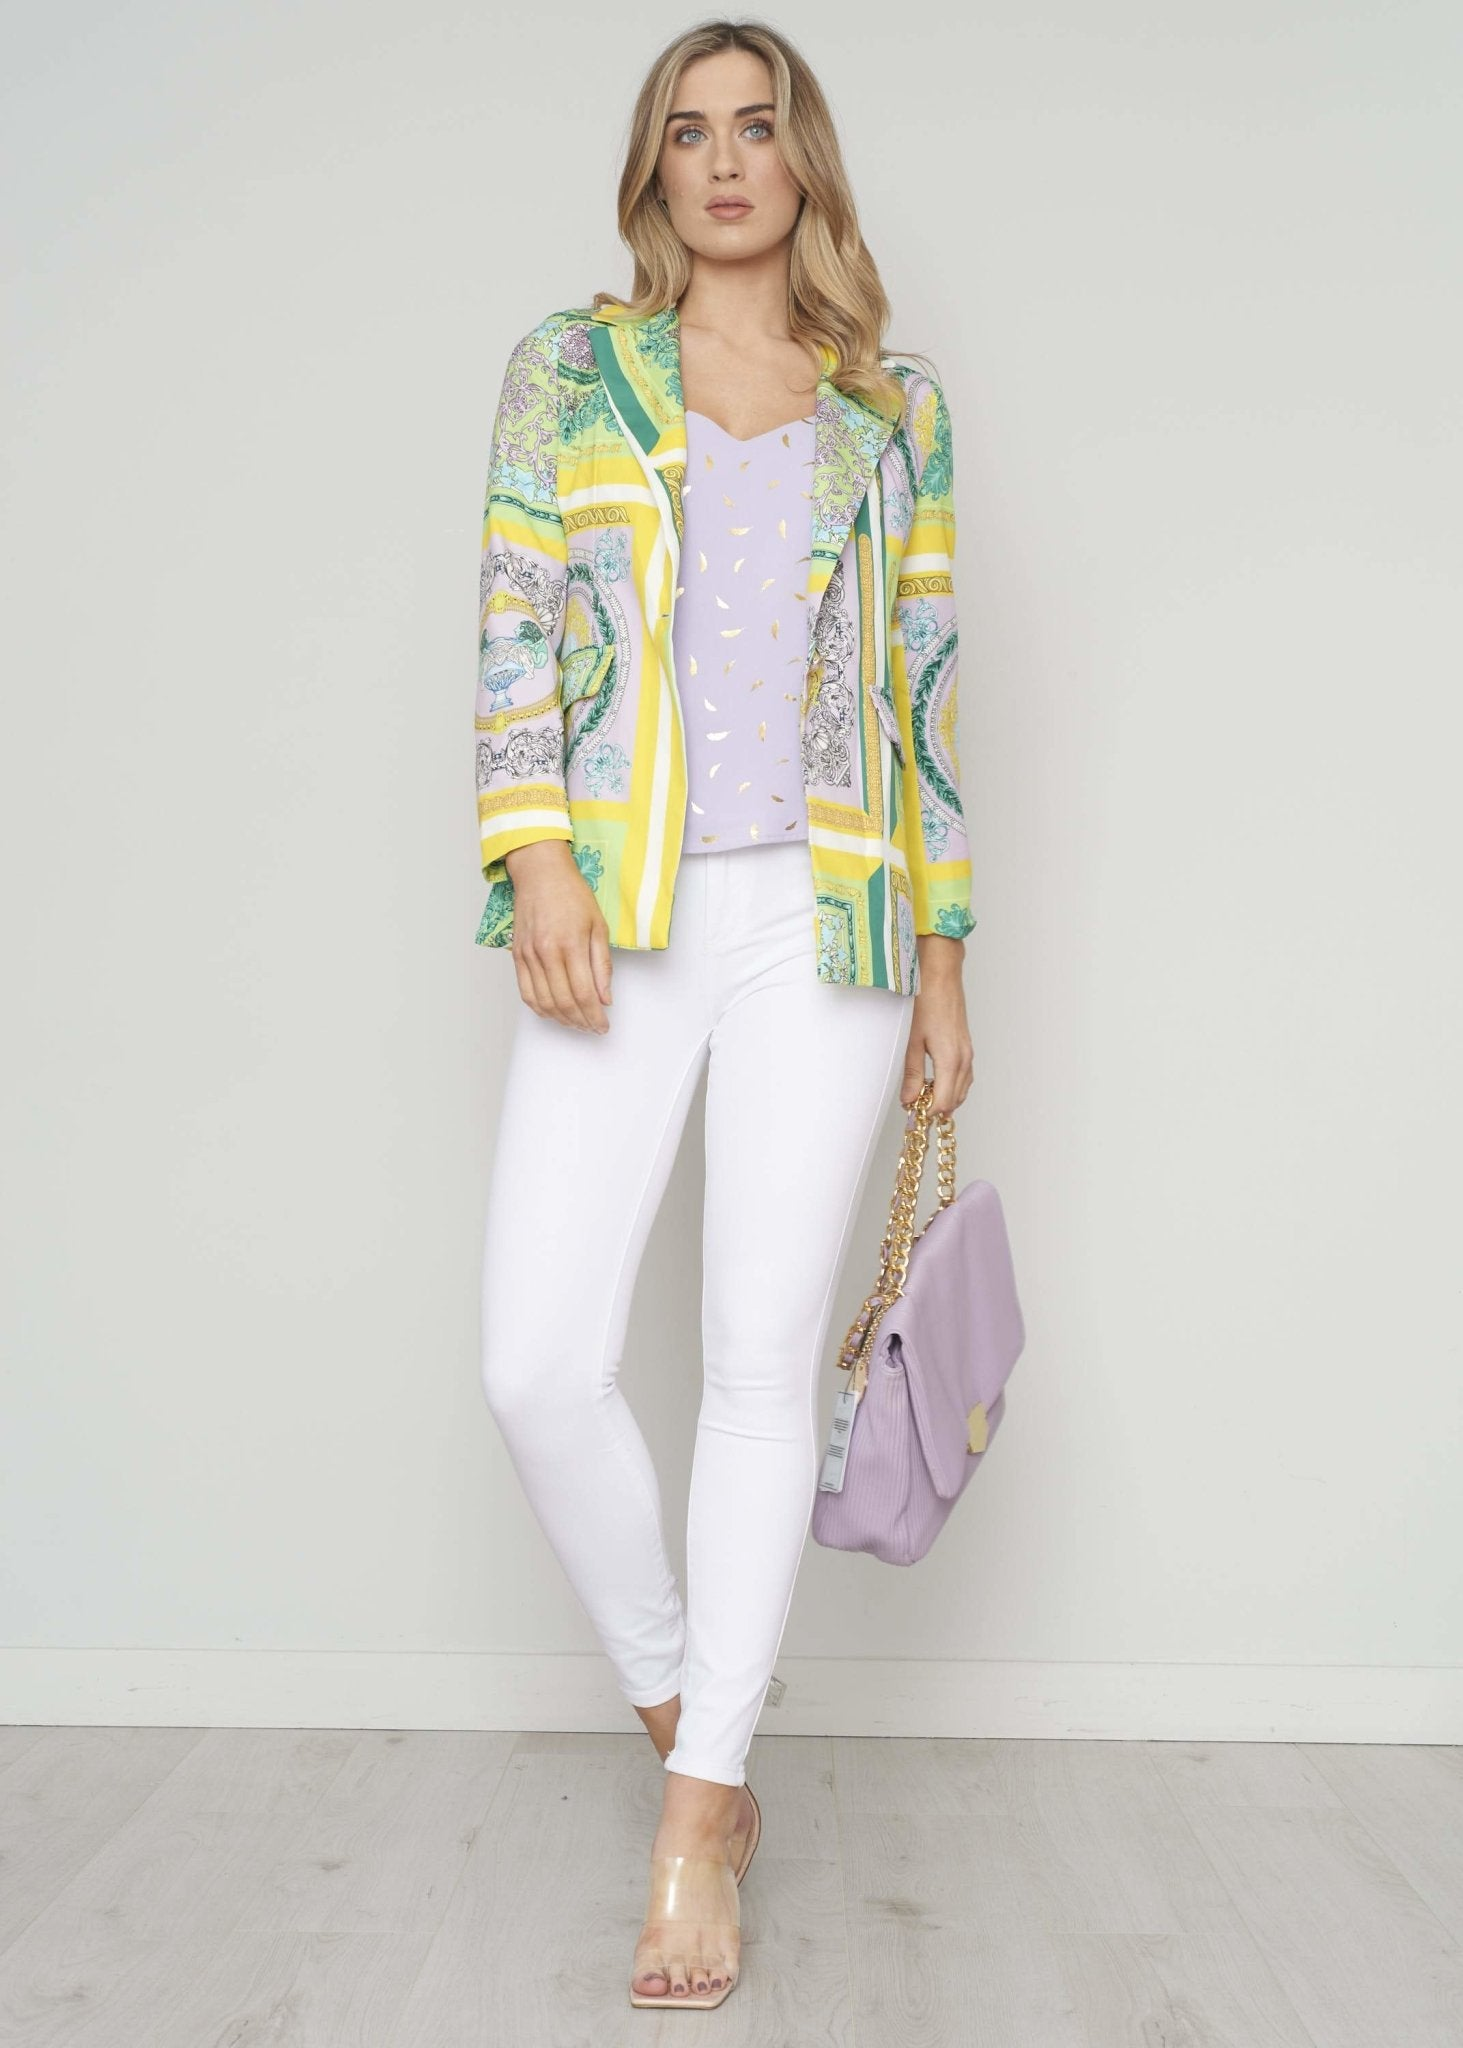 Indie Printed Blazer In Lilac Mix - The Walk in Wardrobe